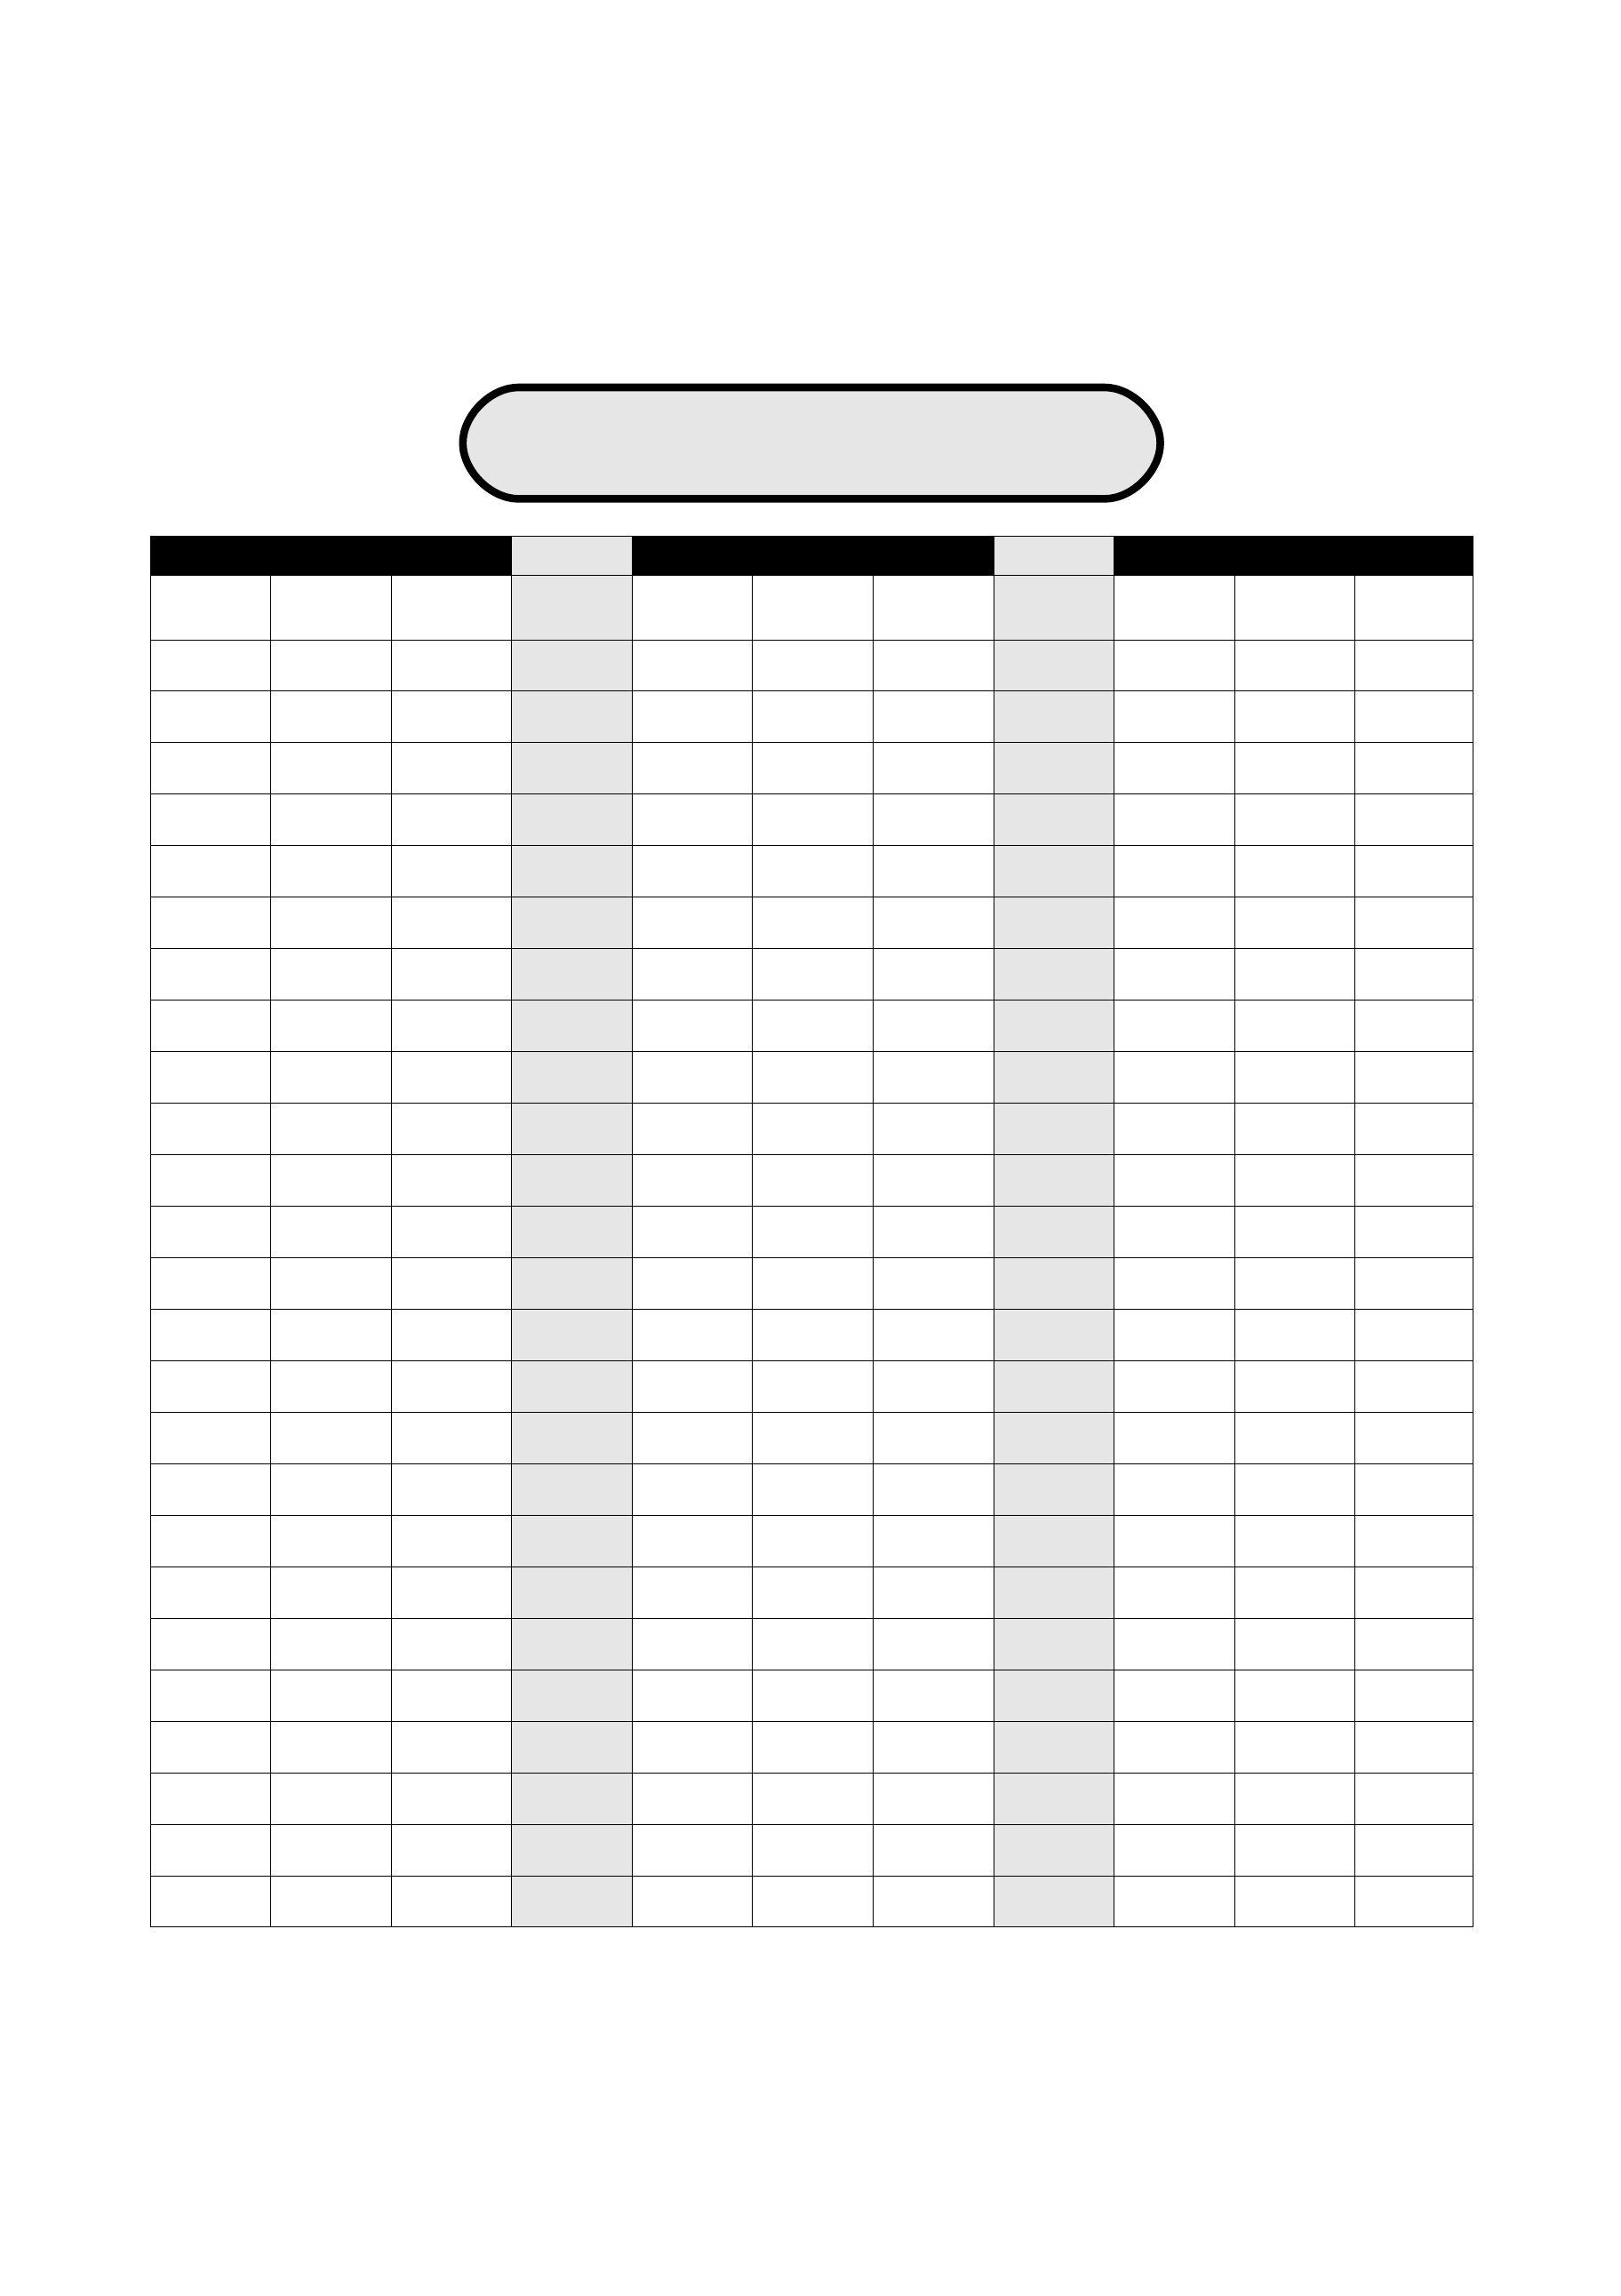 Blank Place Value Chart Free Download